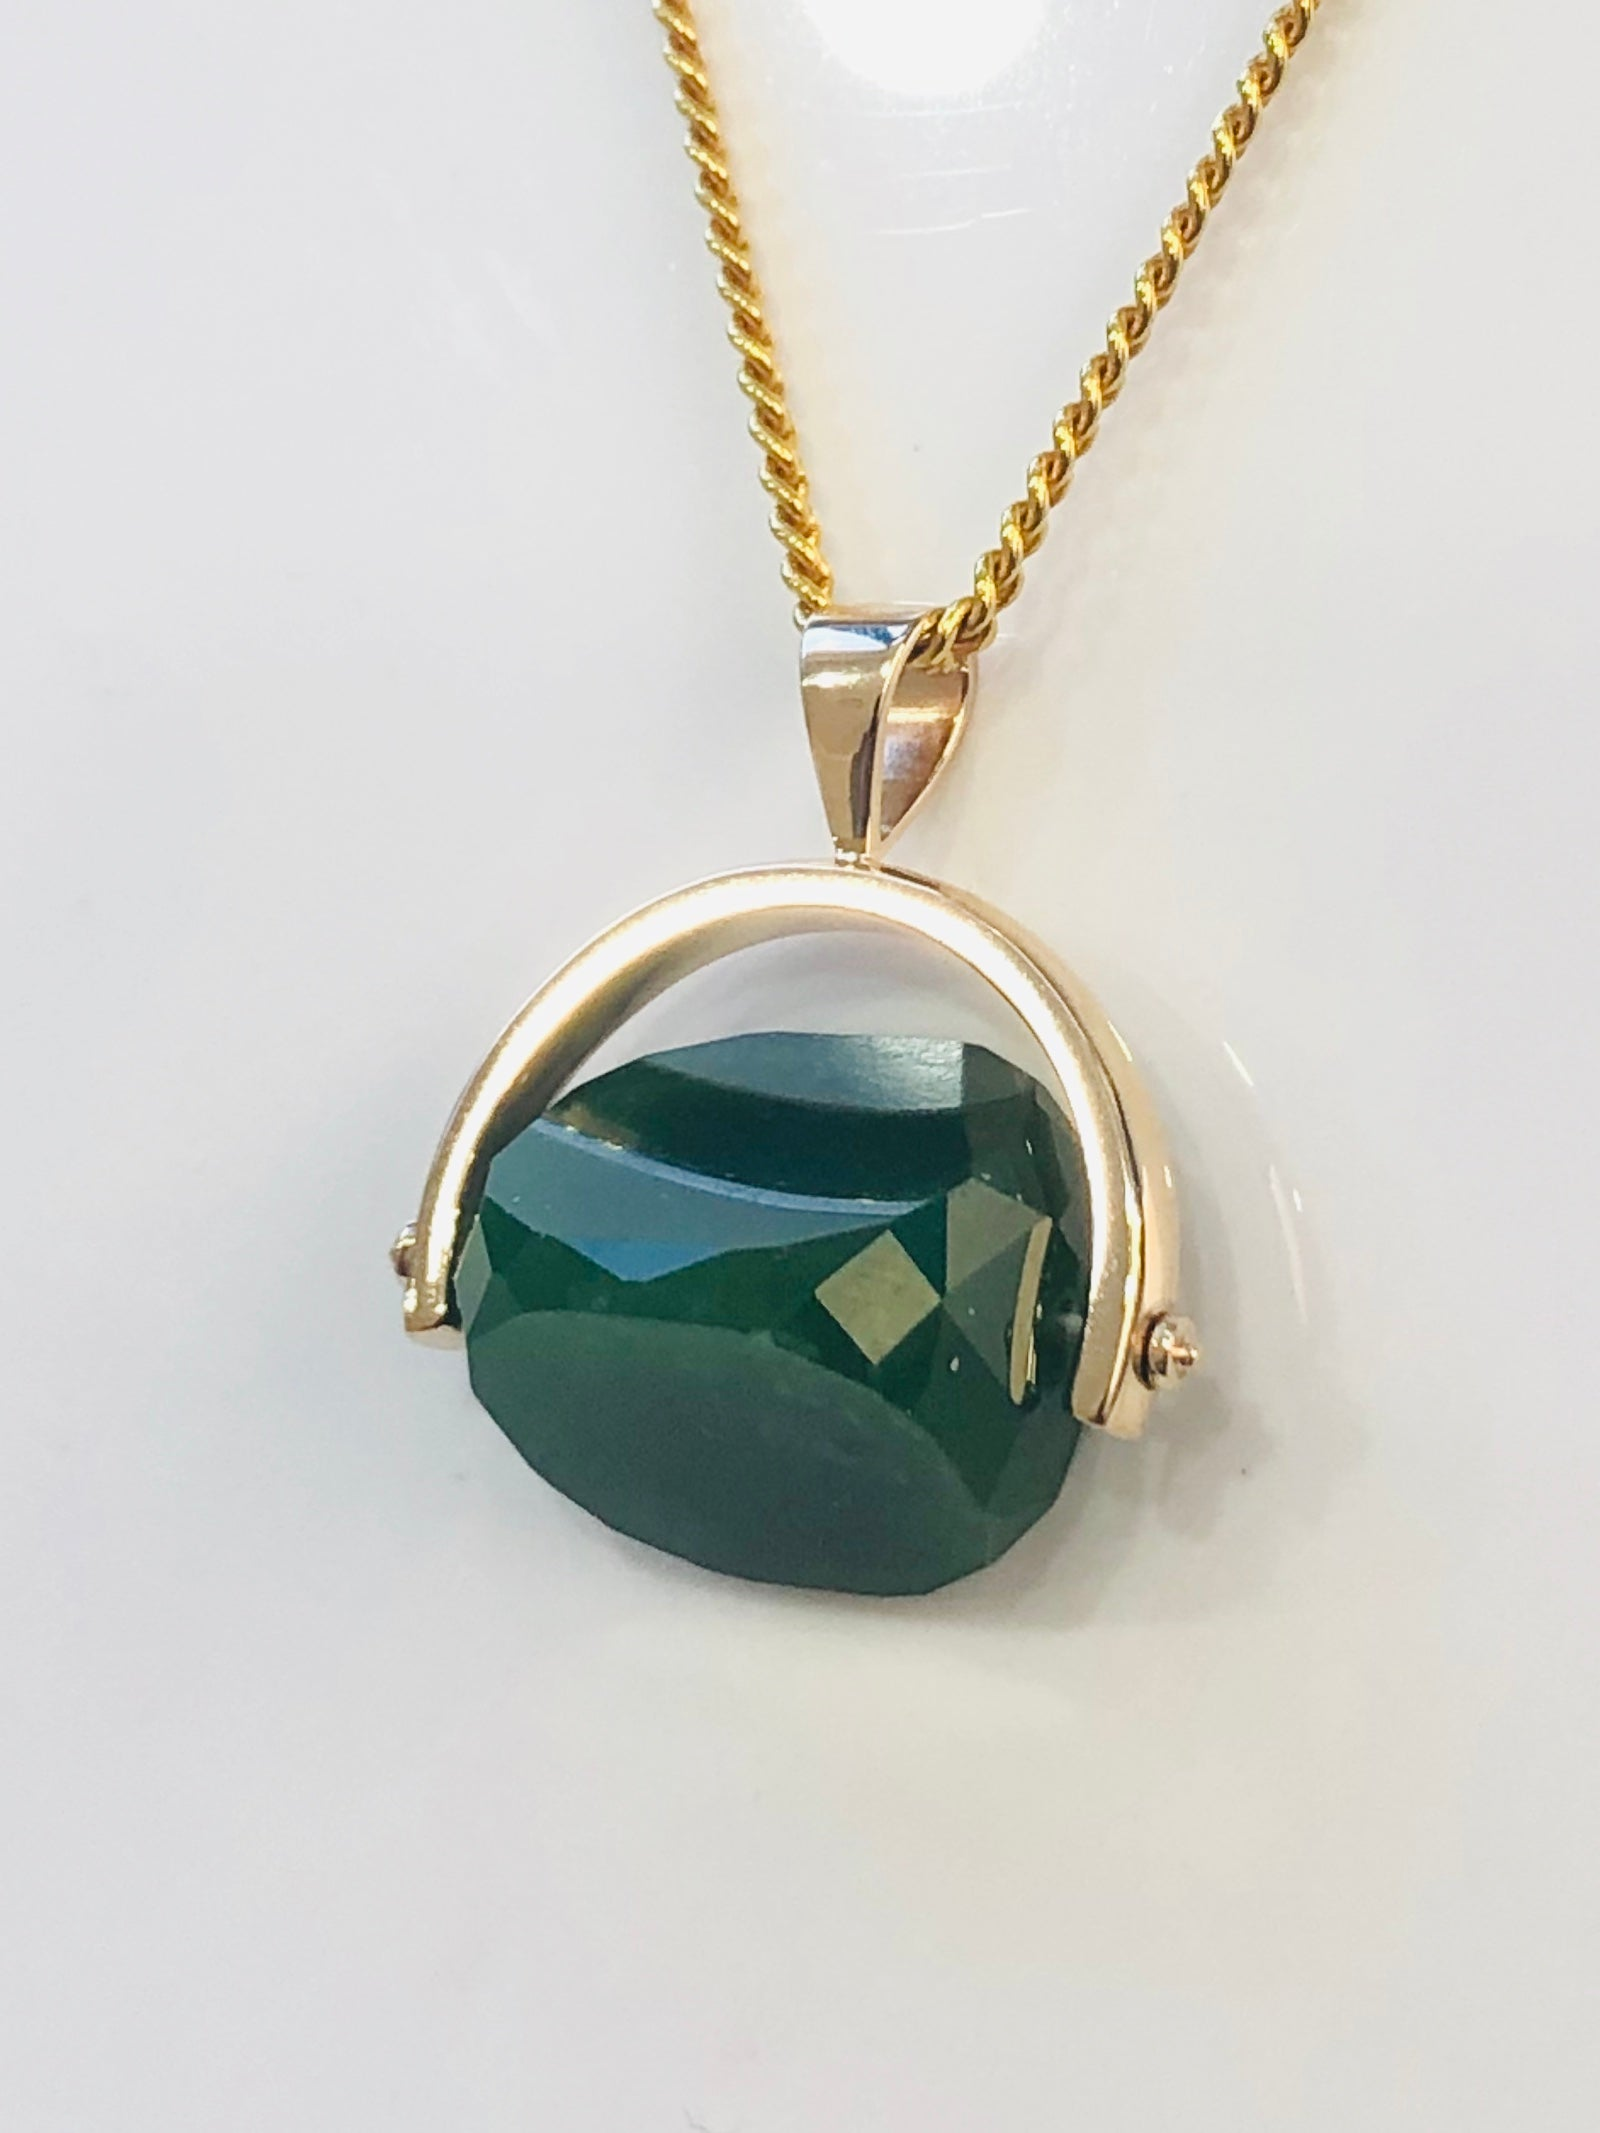 9ct Gold Spinning Greenstone Pendant